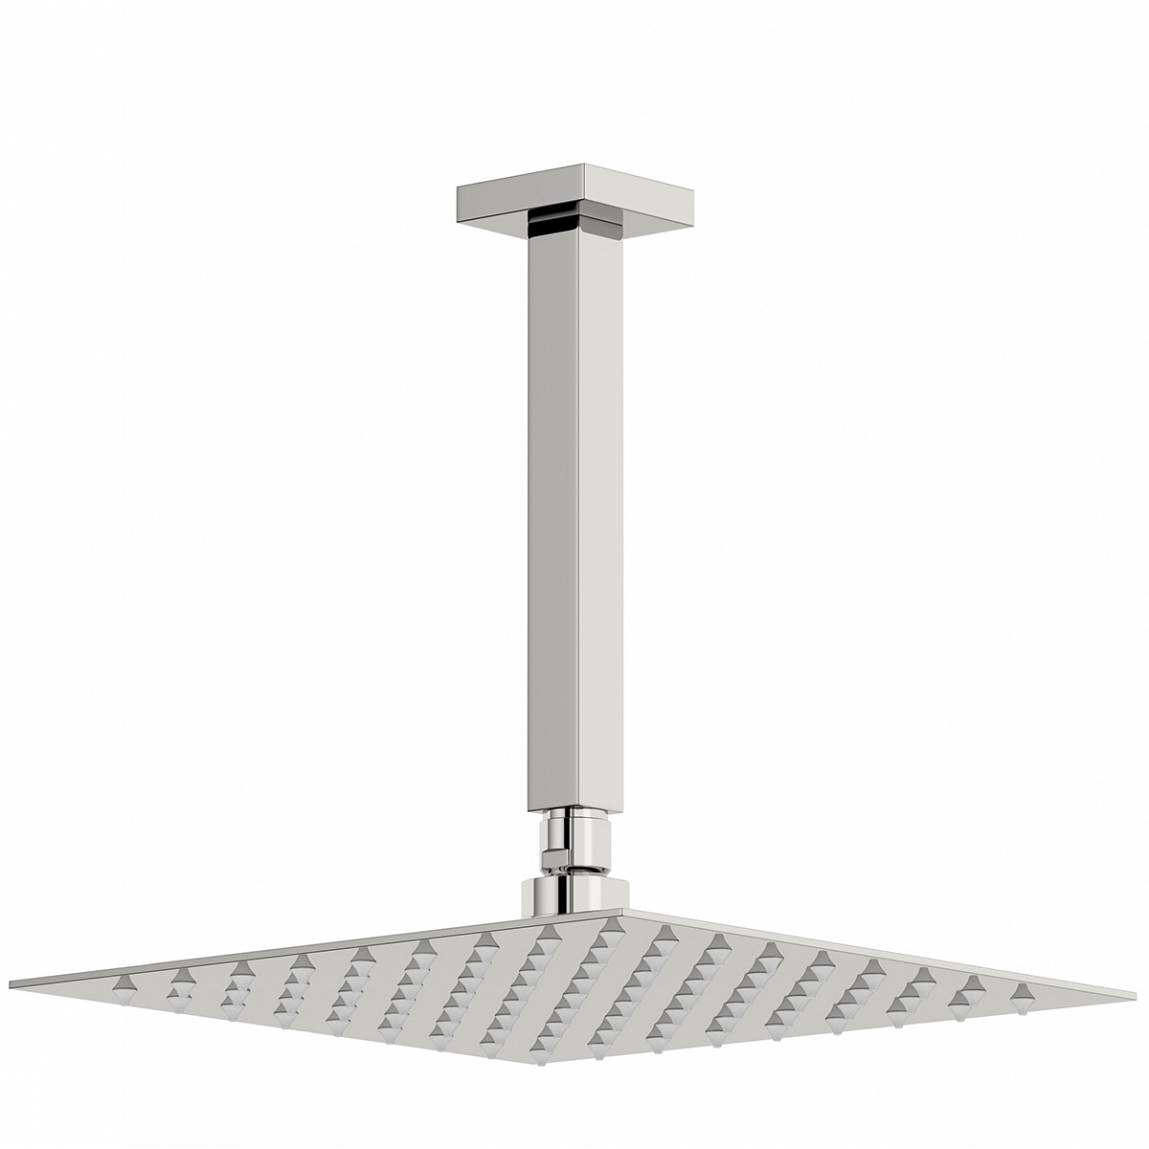 Image of Arcus 250mm Shower Head & Square Ceiling Arm